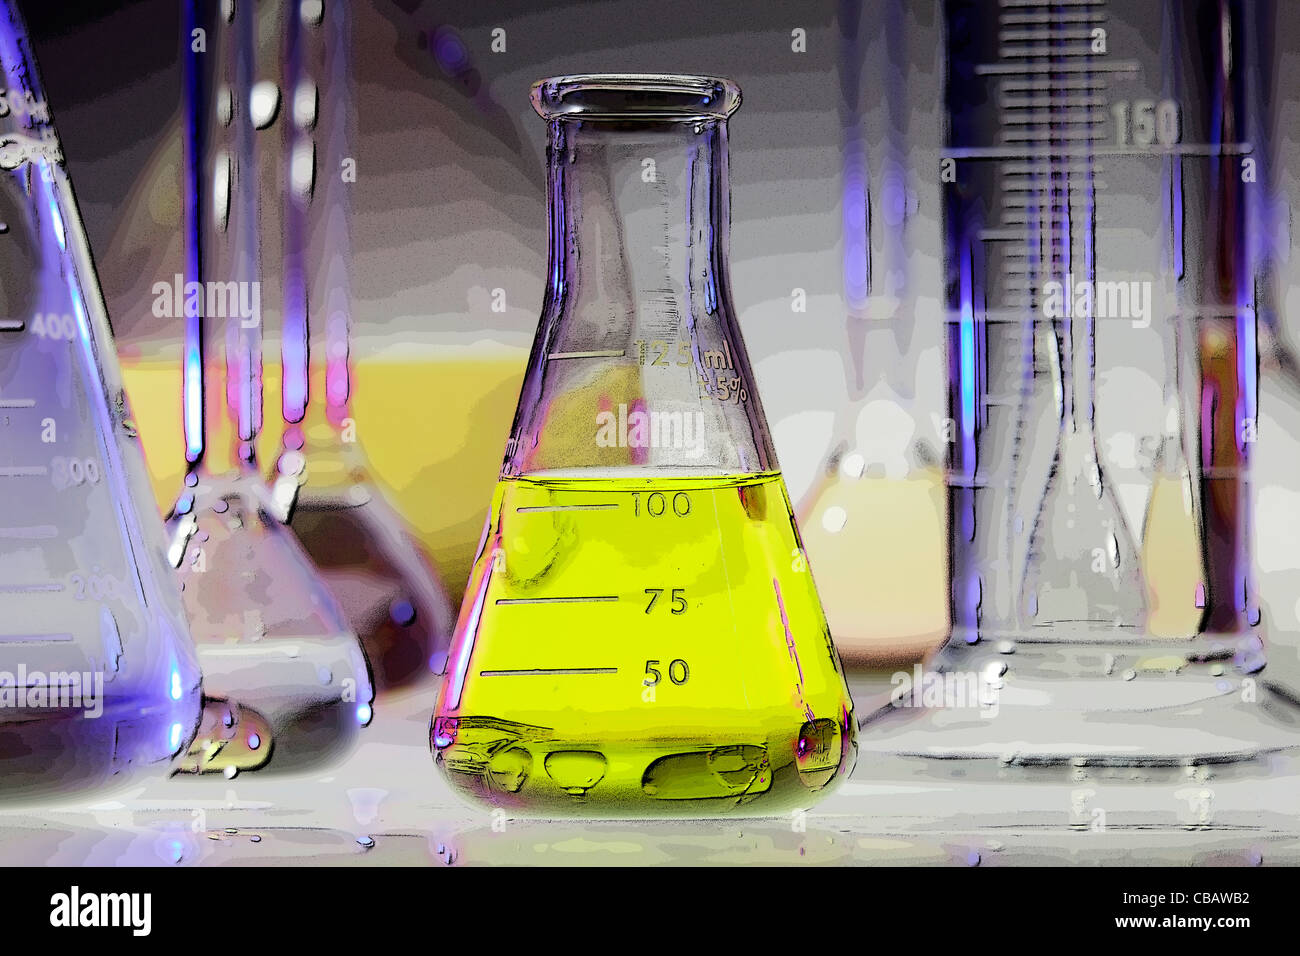 Chemical Glassware - Stock Image